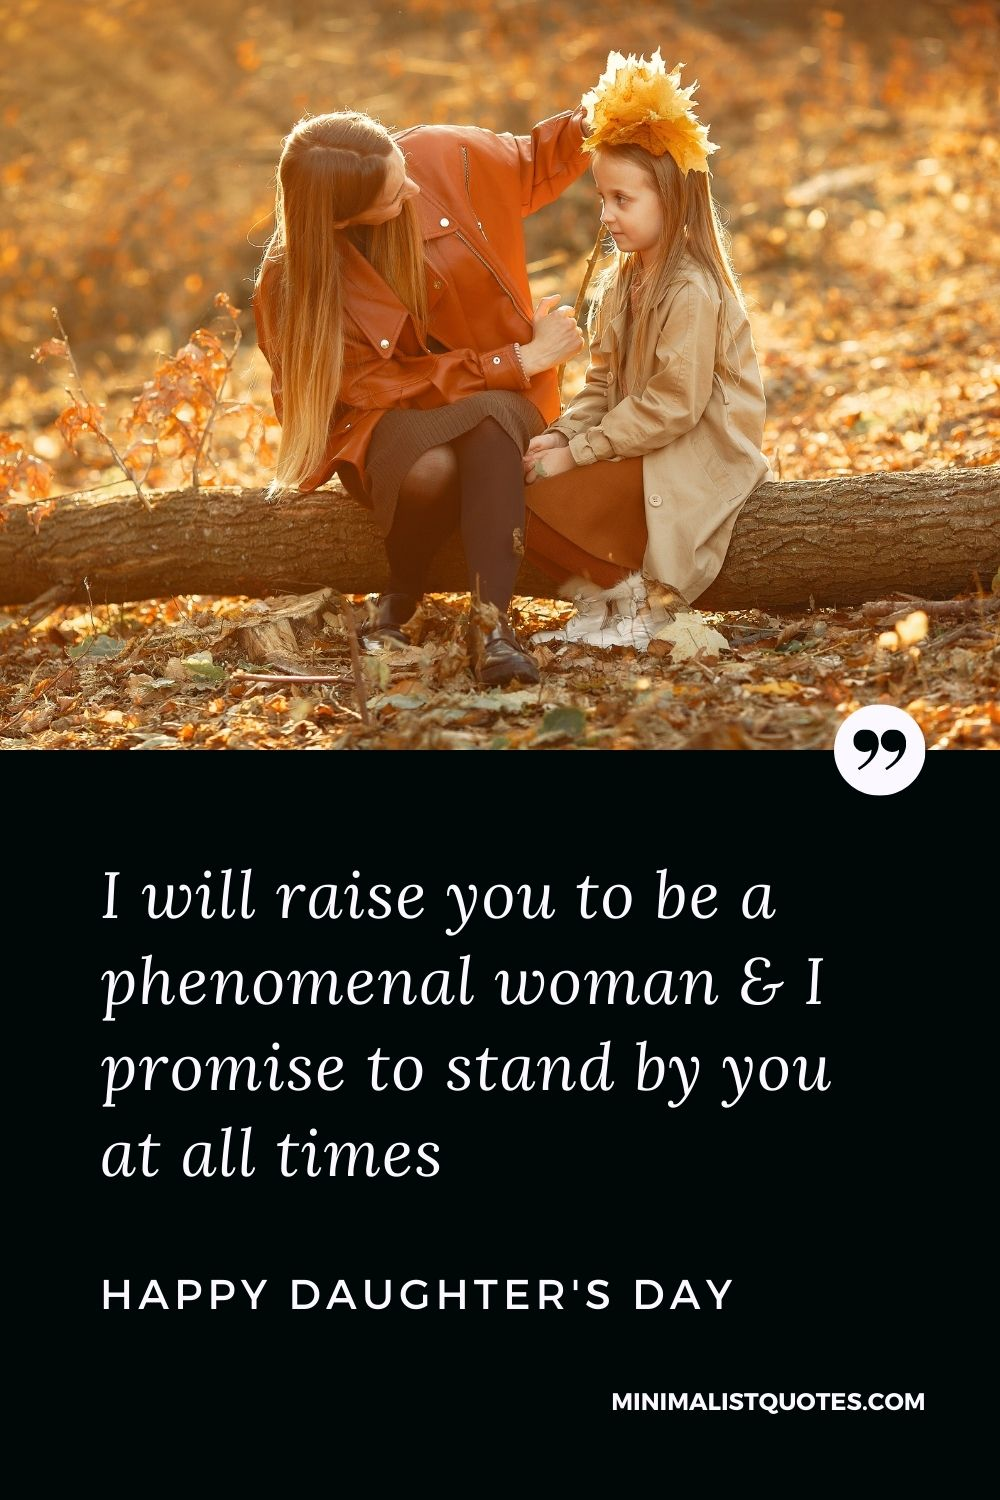 Daughter Day Wish, Message & Quote With Image: I will raise you to be a phenomenal woman & I promise to stand by you at all times. Happy Daughter's Day!